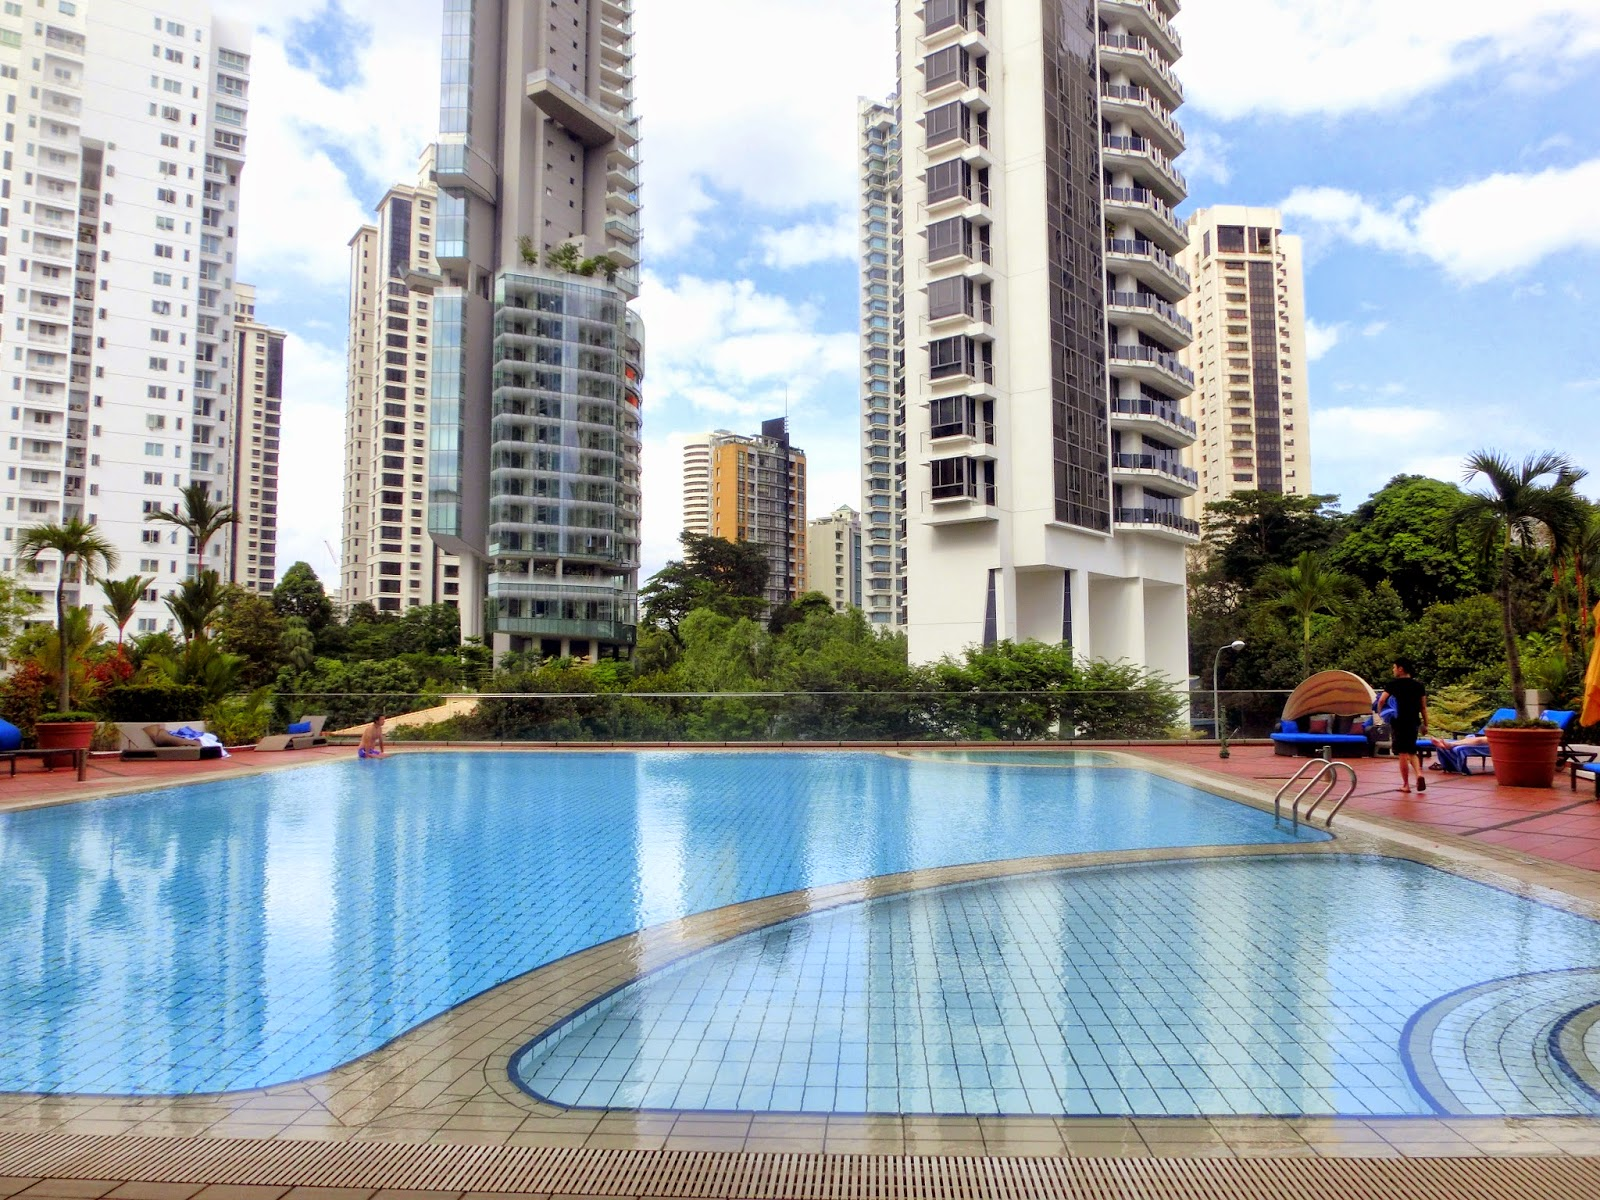 Staycation pan pacific orchard singapore club studio - Pan pacific orchard swimming pool ...